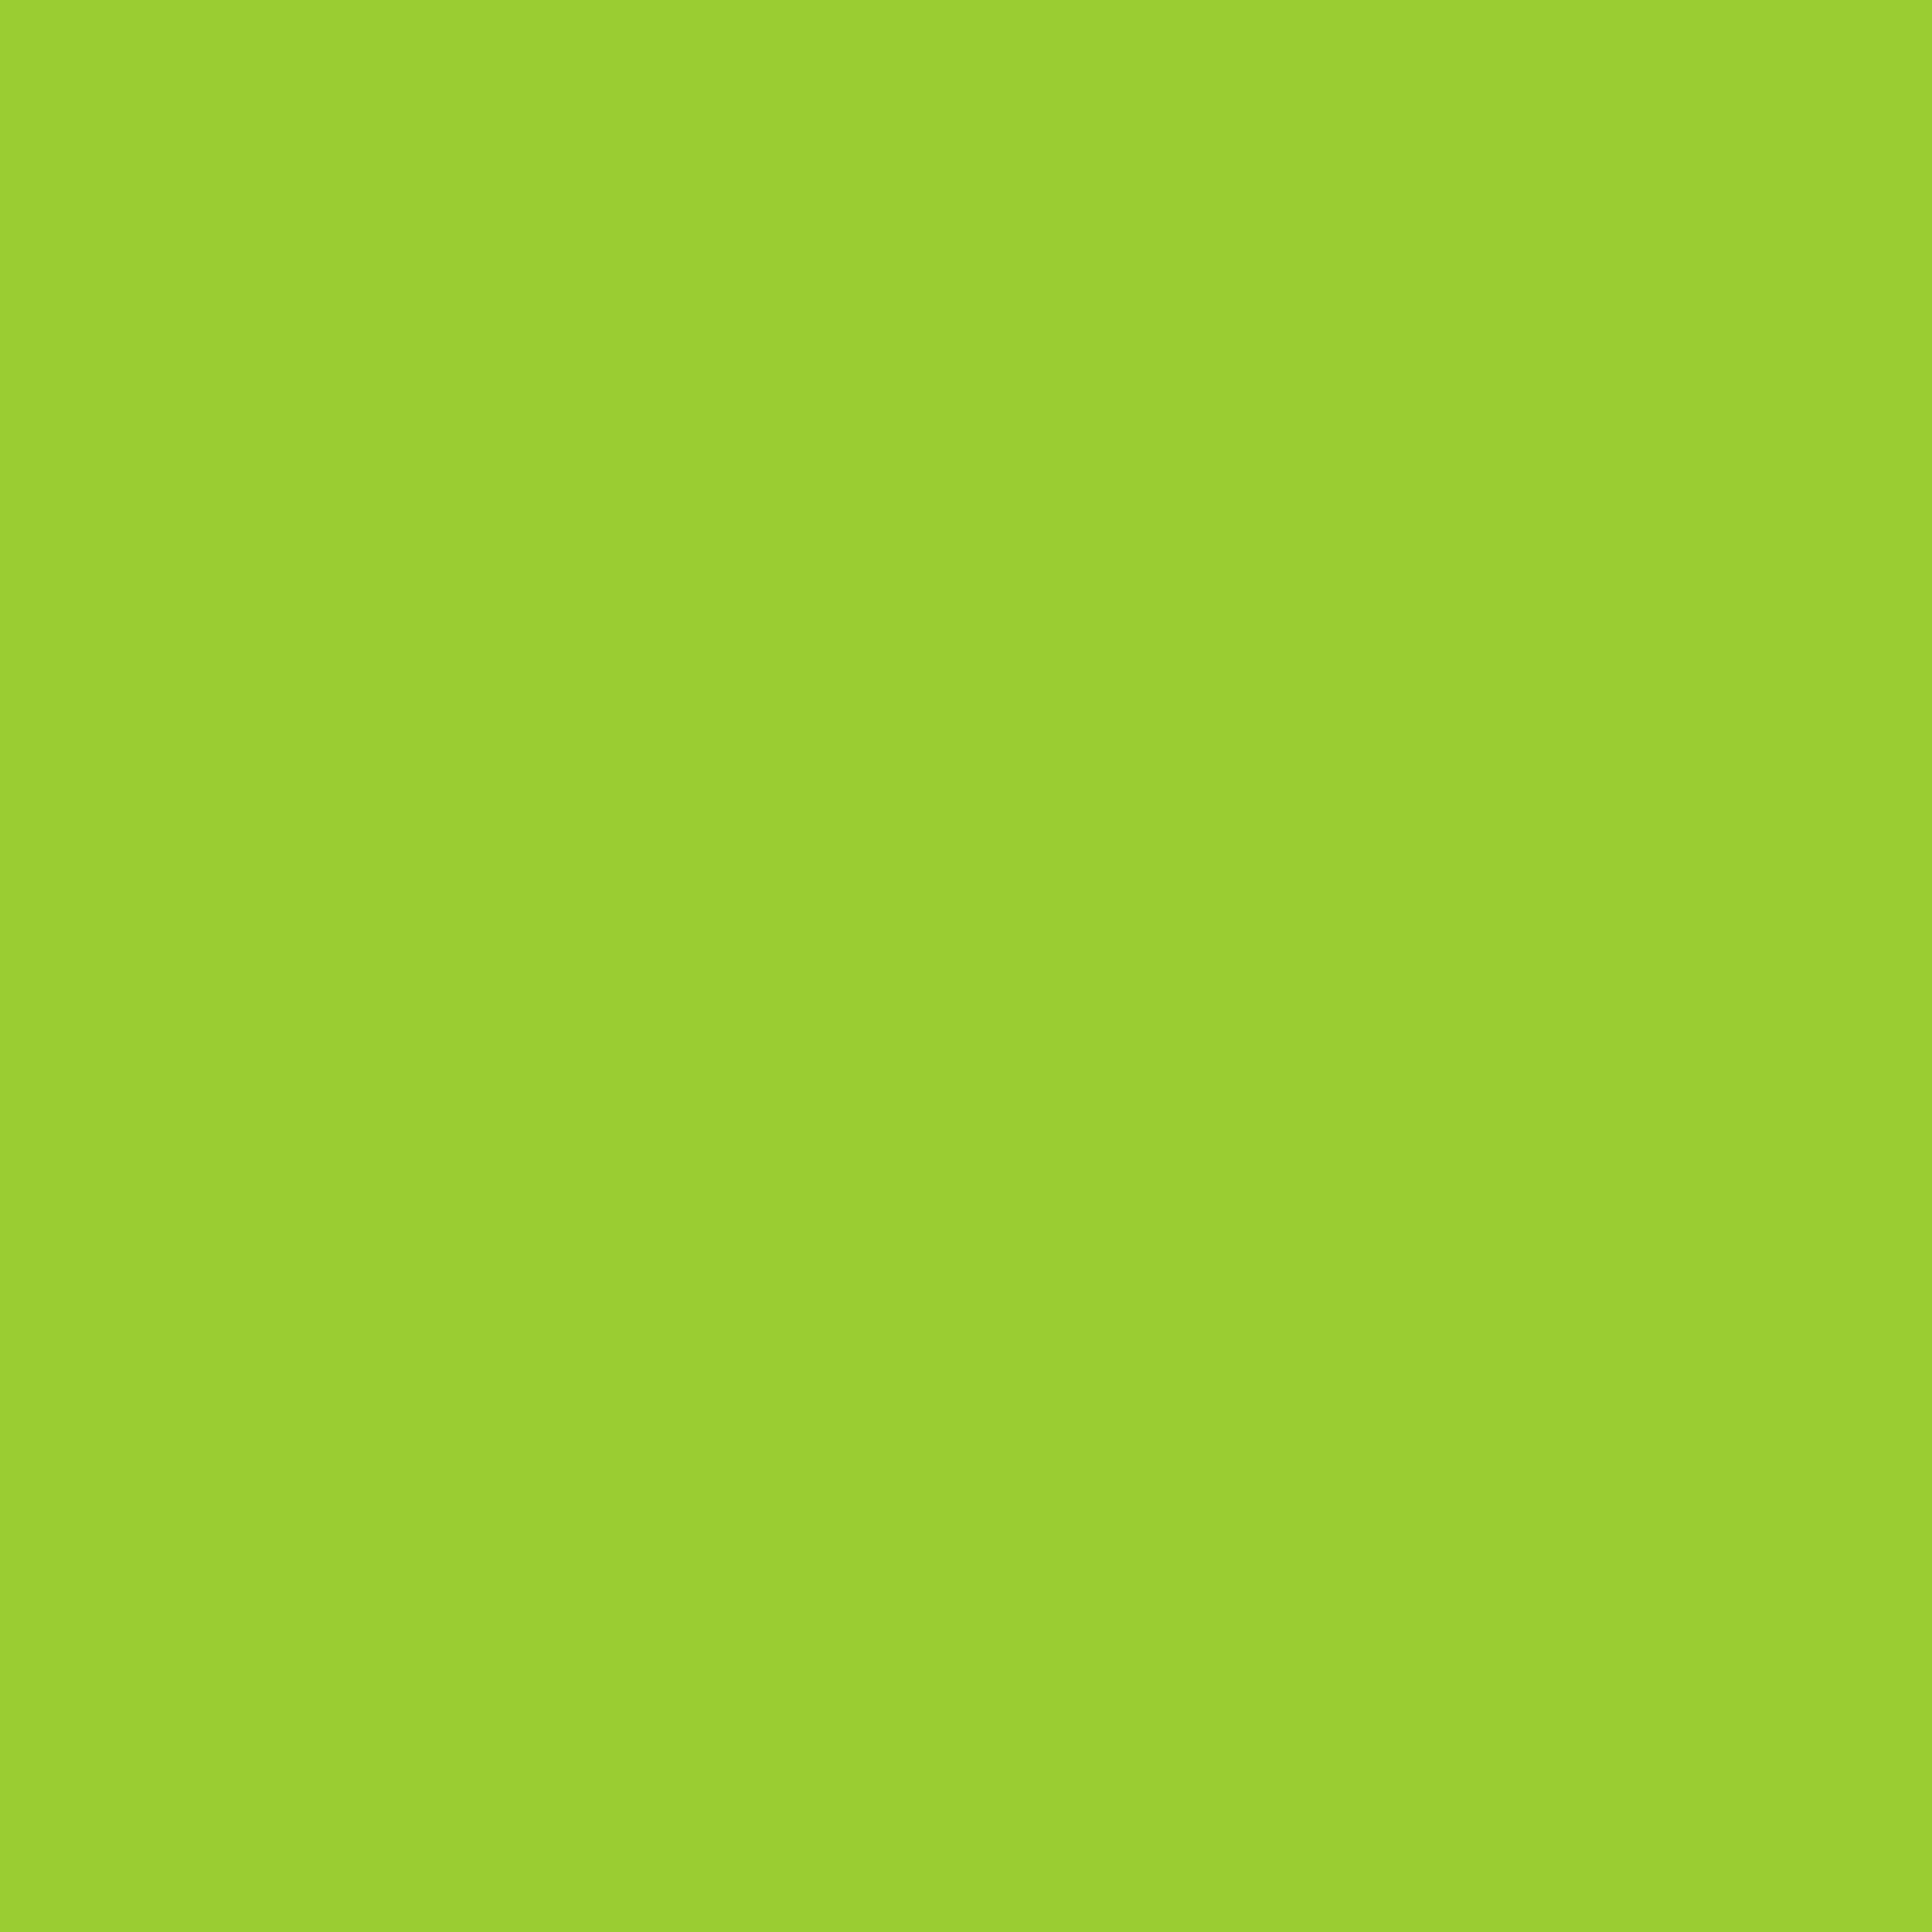 3600x3600 Yellow-green Solid Color Background